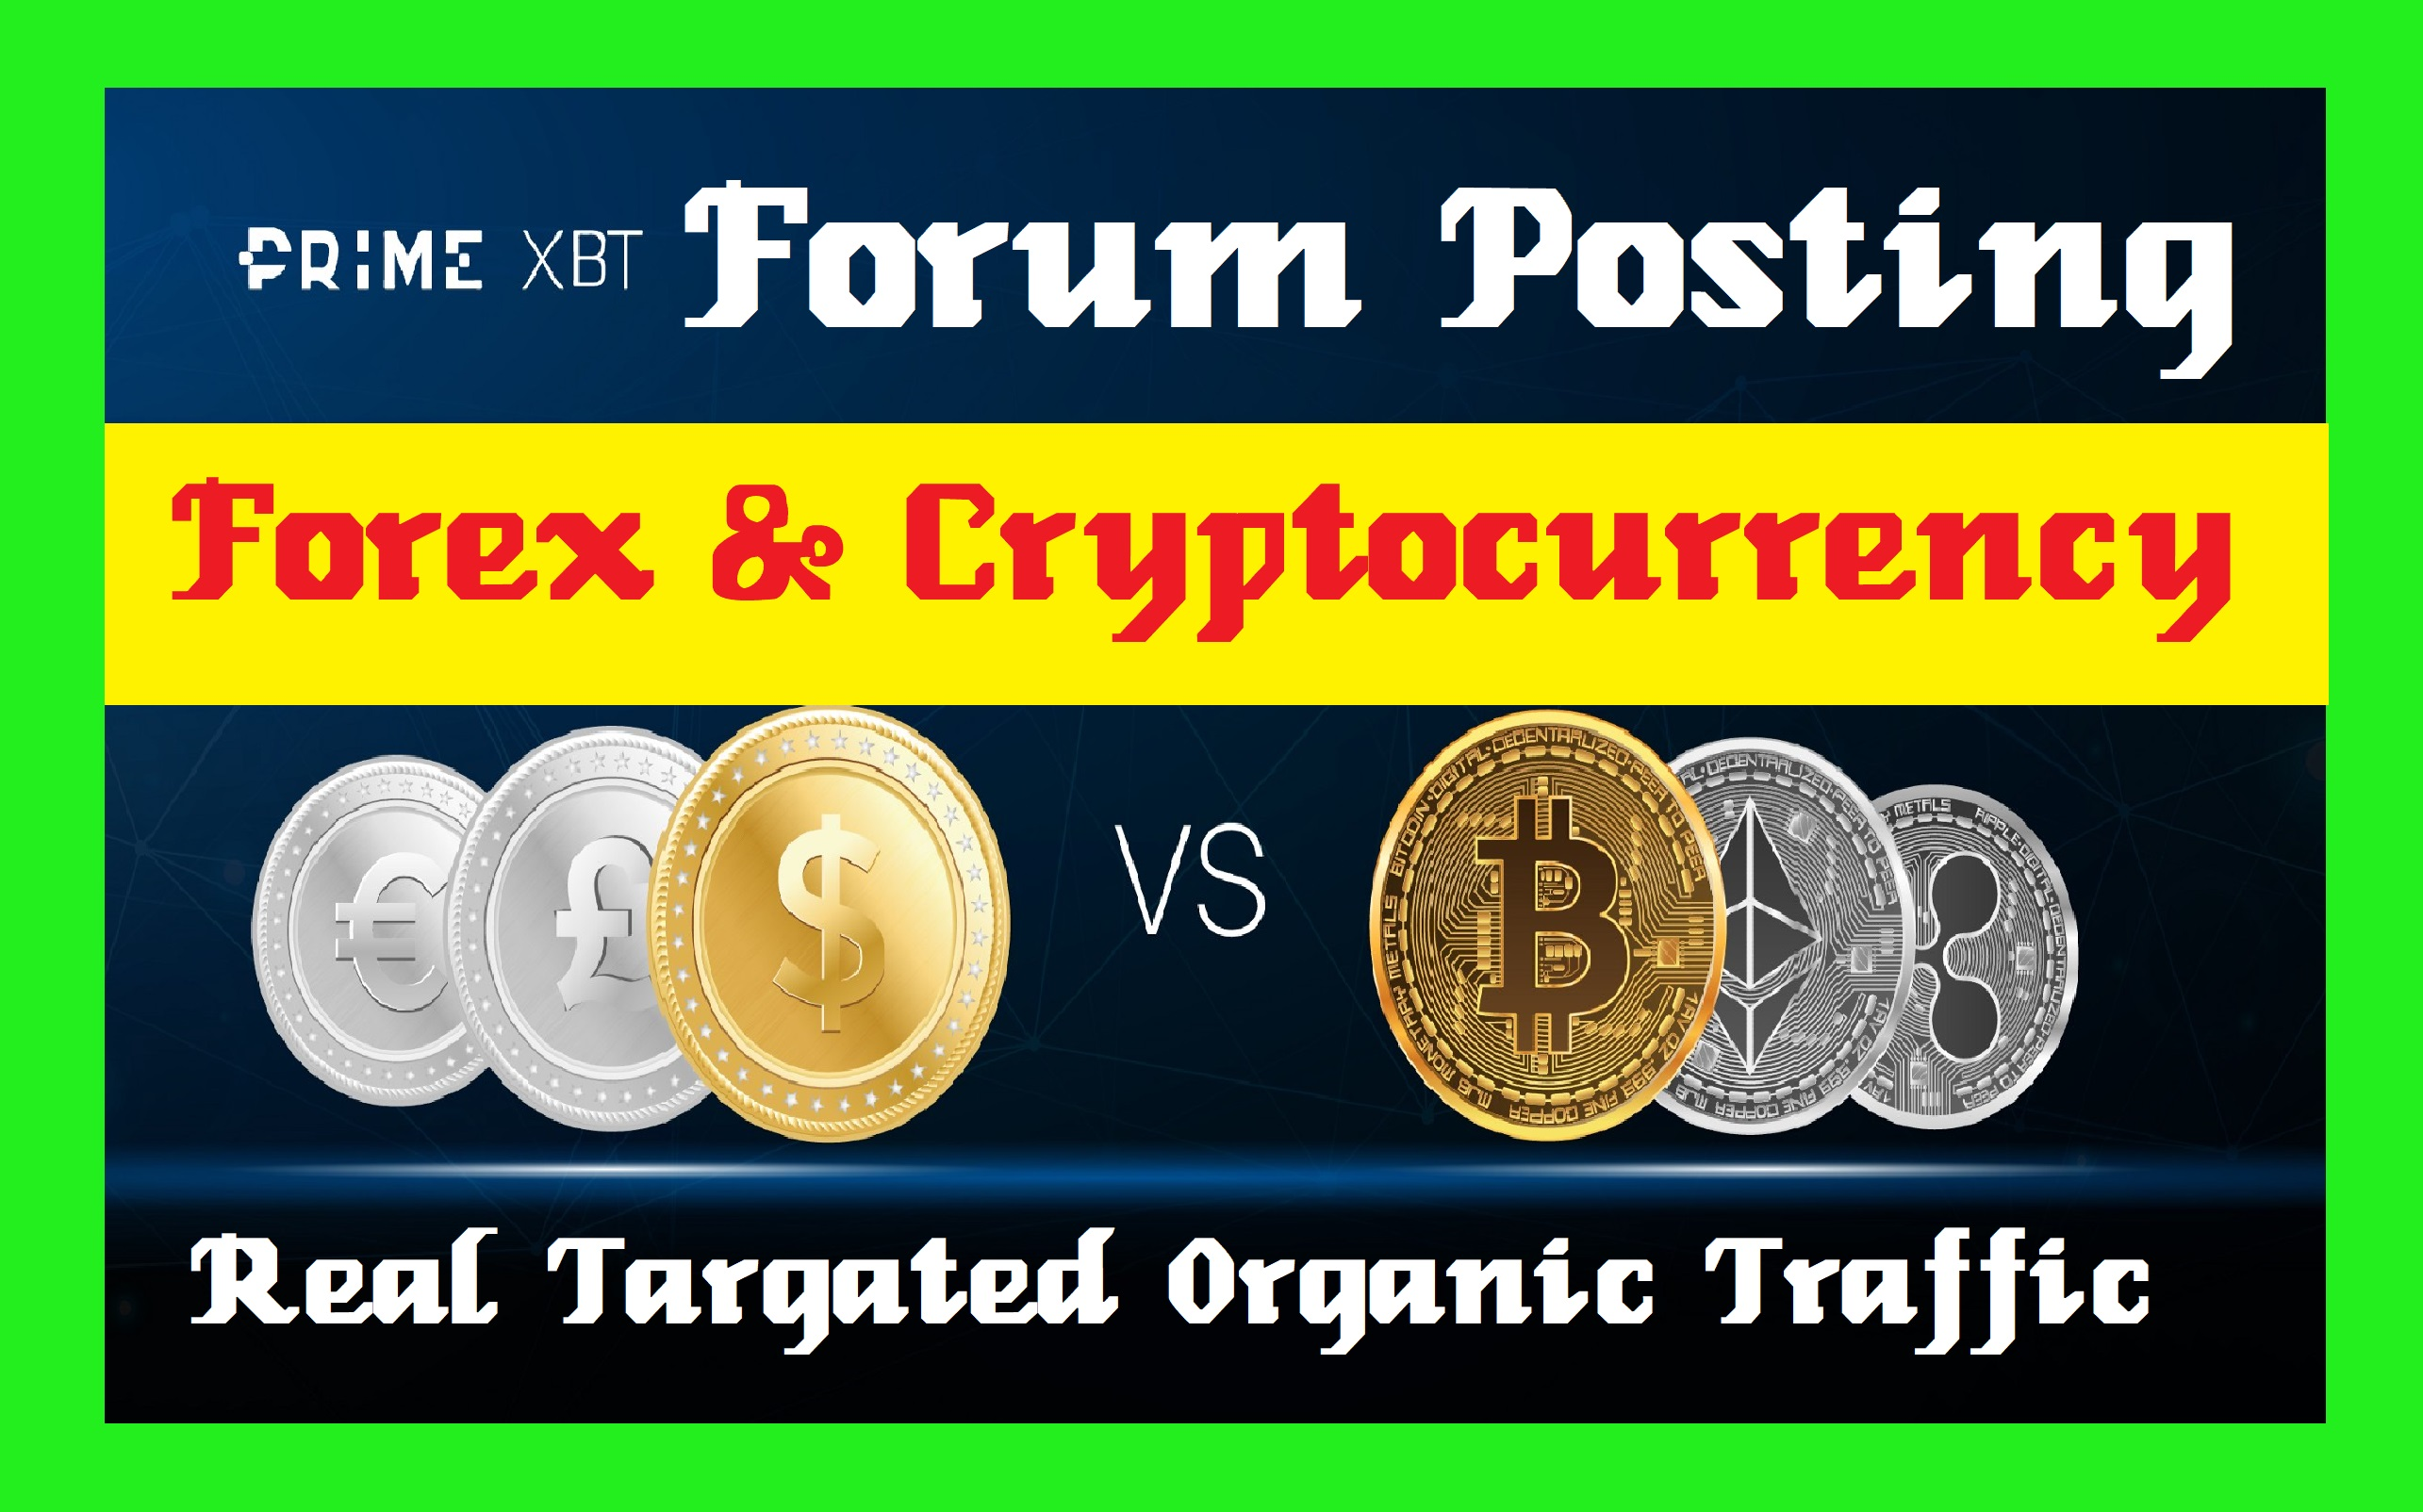 25 Forum Posting Backlinks, Forex And Cryptocurrency Related Topic Post Reply